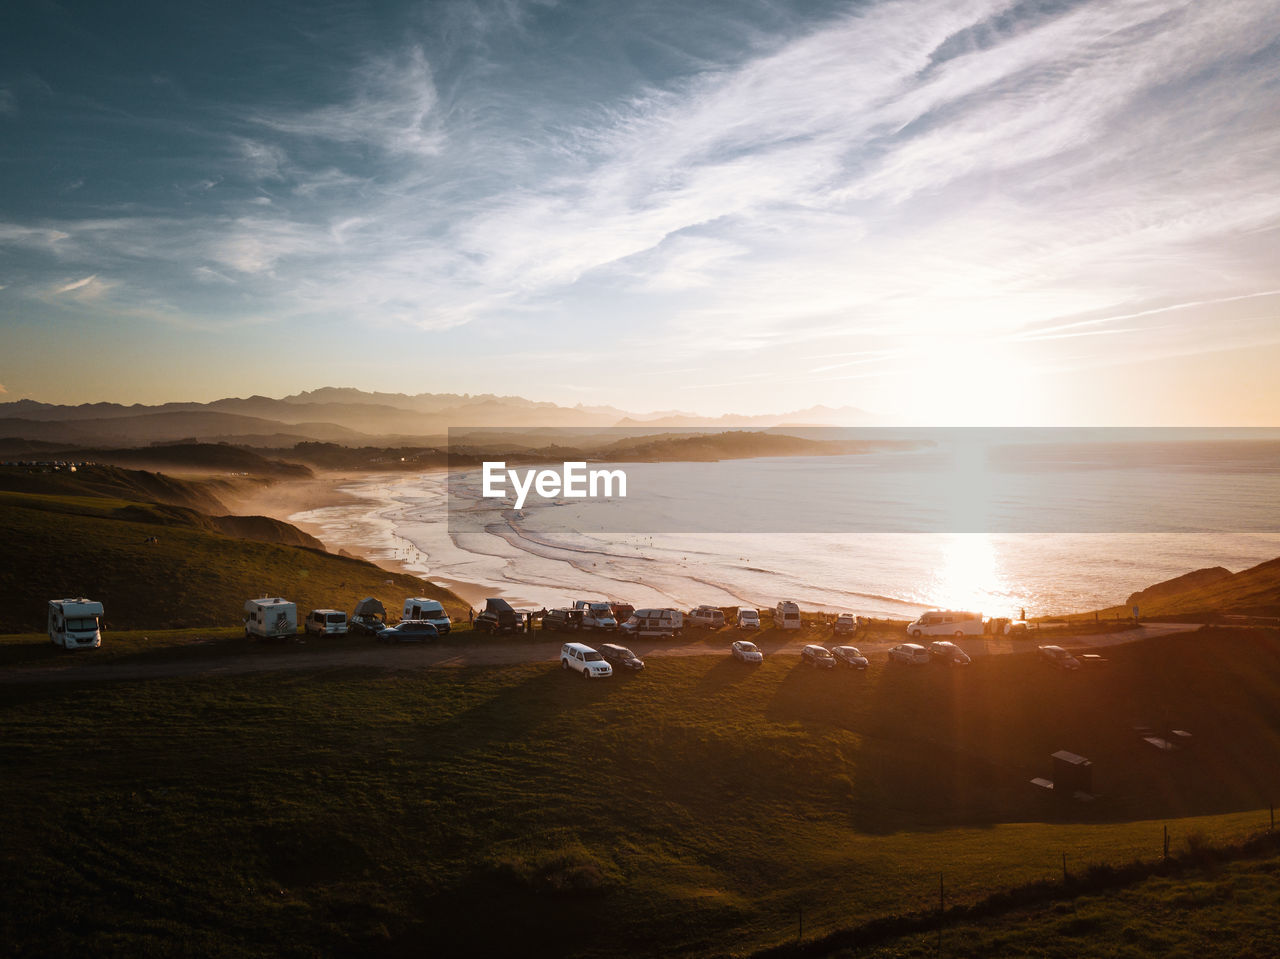 sky, scenics - nature, beauty in nature, cloud - sky, tranquil scene, sunset, tranquility, nature, environment, land, sunlight, sun, landscape, non-urban scene, mountain, no people, sunbeam, idyllic, field, land vehicle, lens flare, outdoors, bright